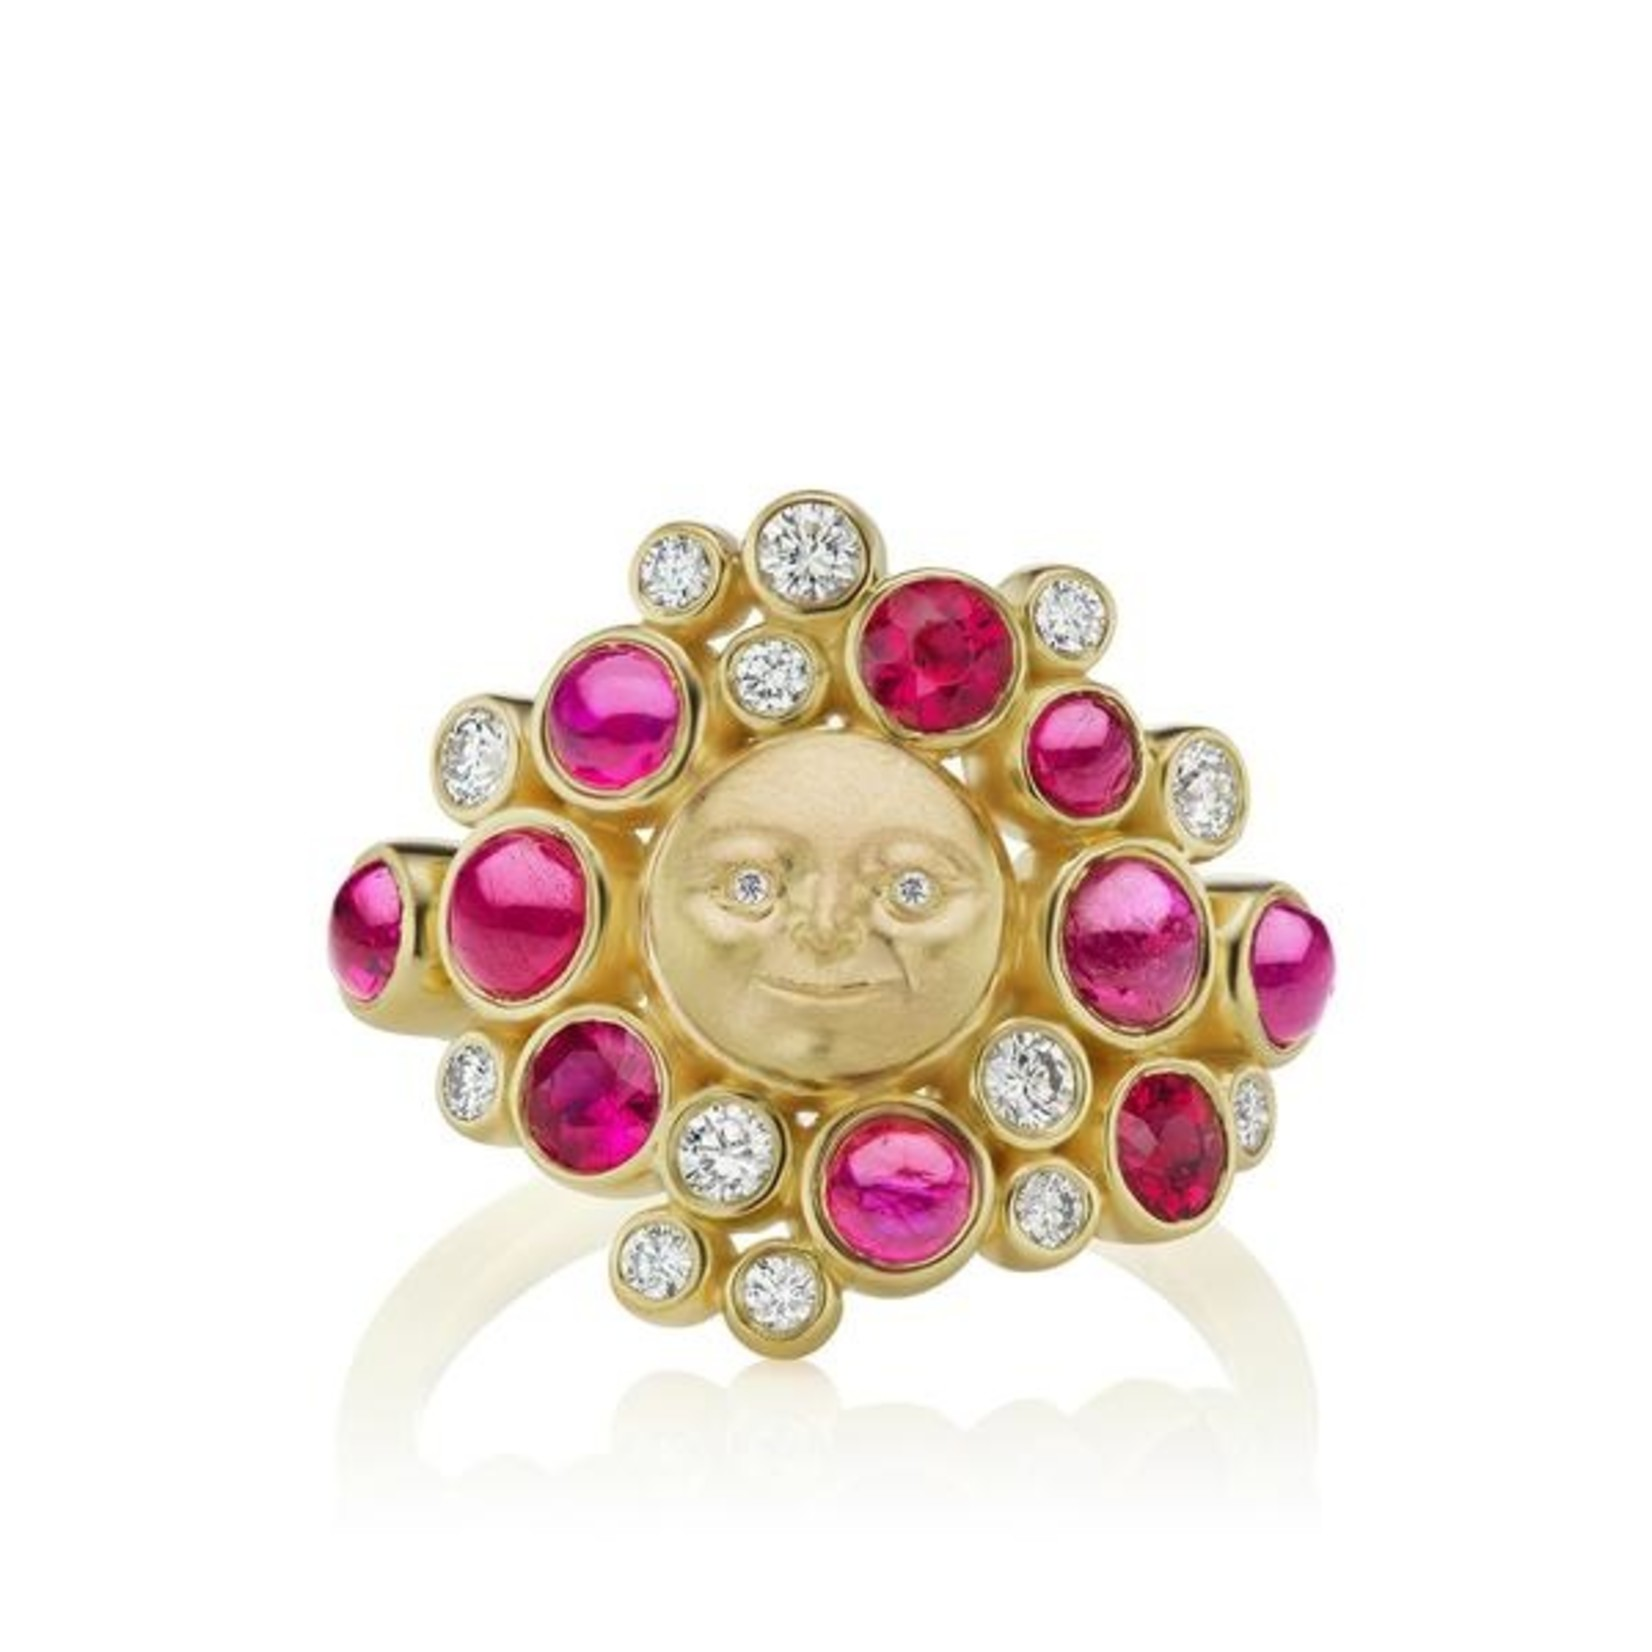 ANTHONY LENT MOONFACE CLUSTER RING WITH RUBIES AND DIAMONDS